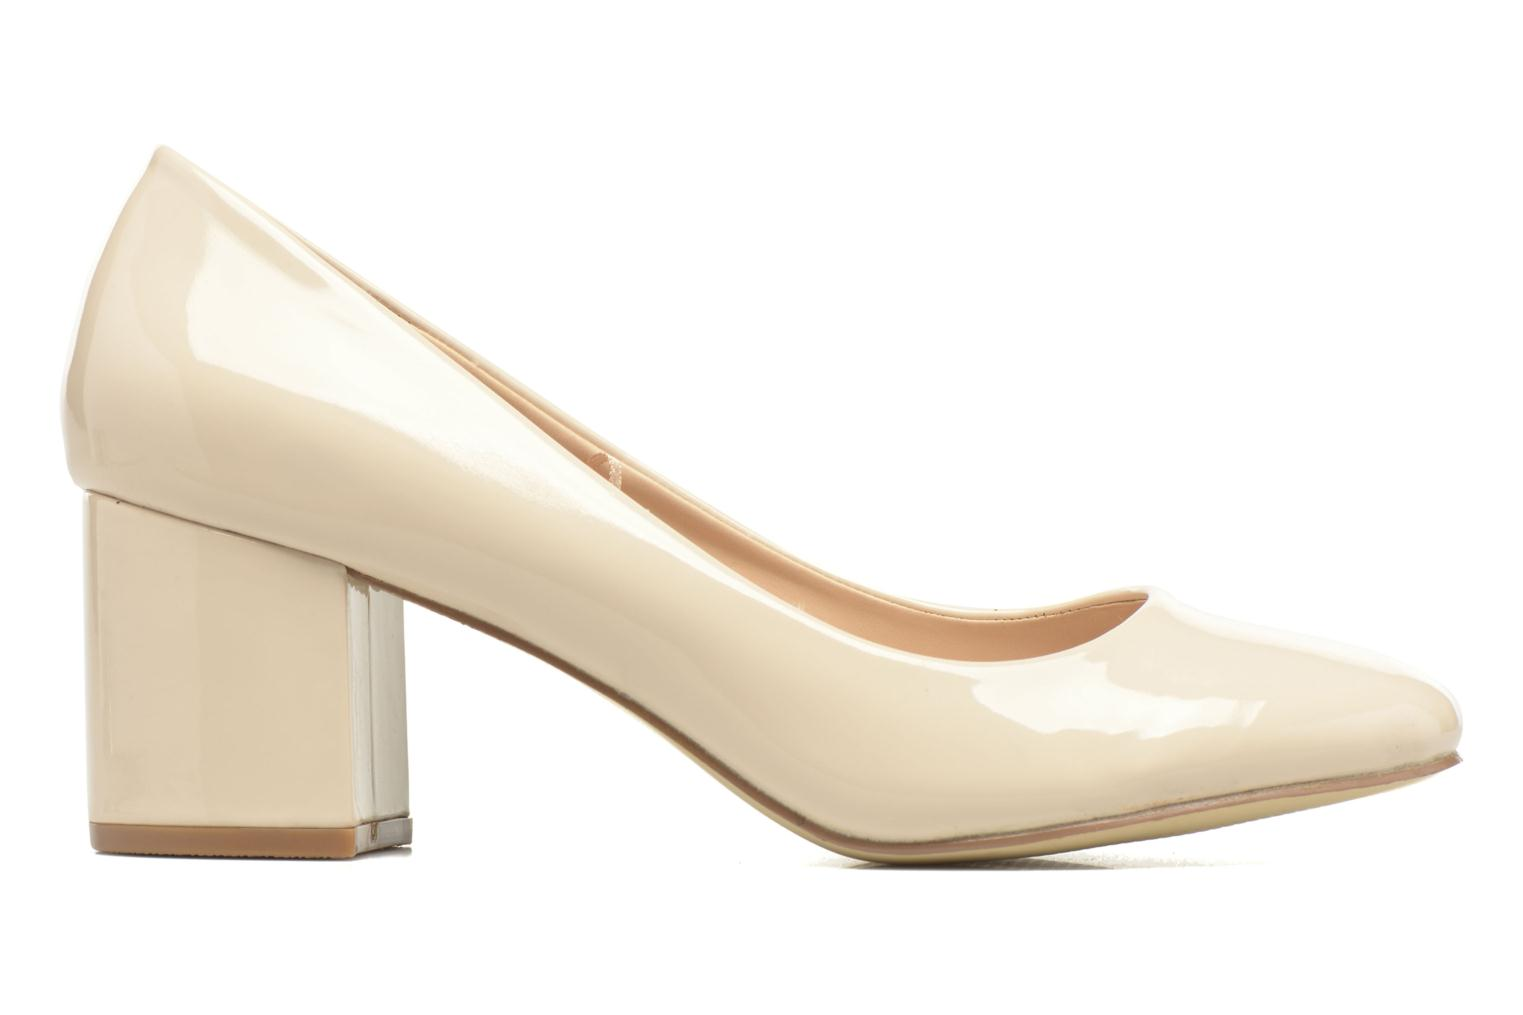 THATA Size + BEIGE PATENT